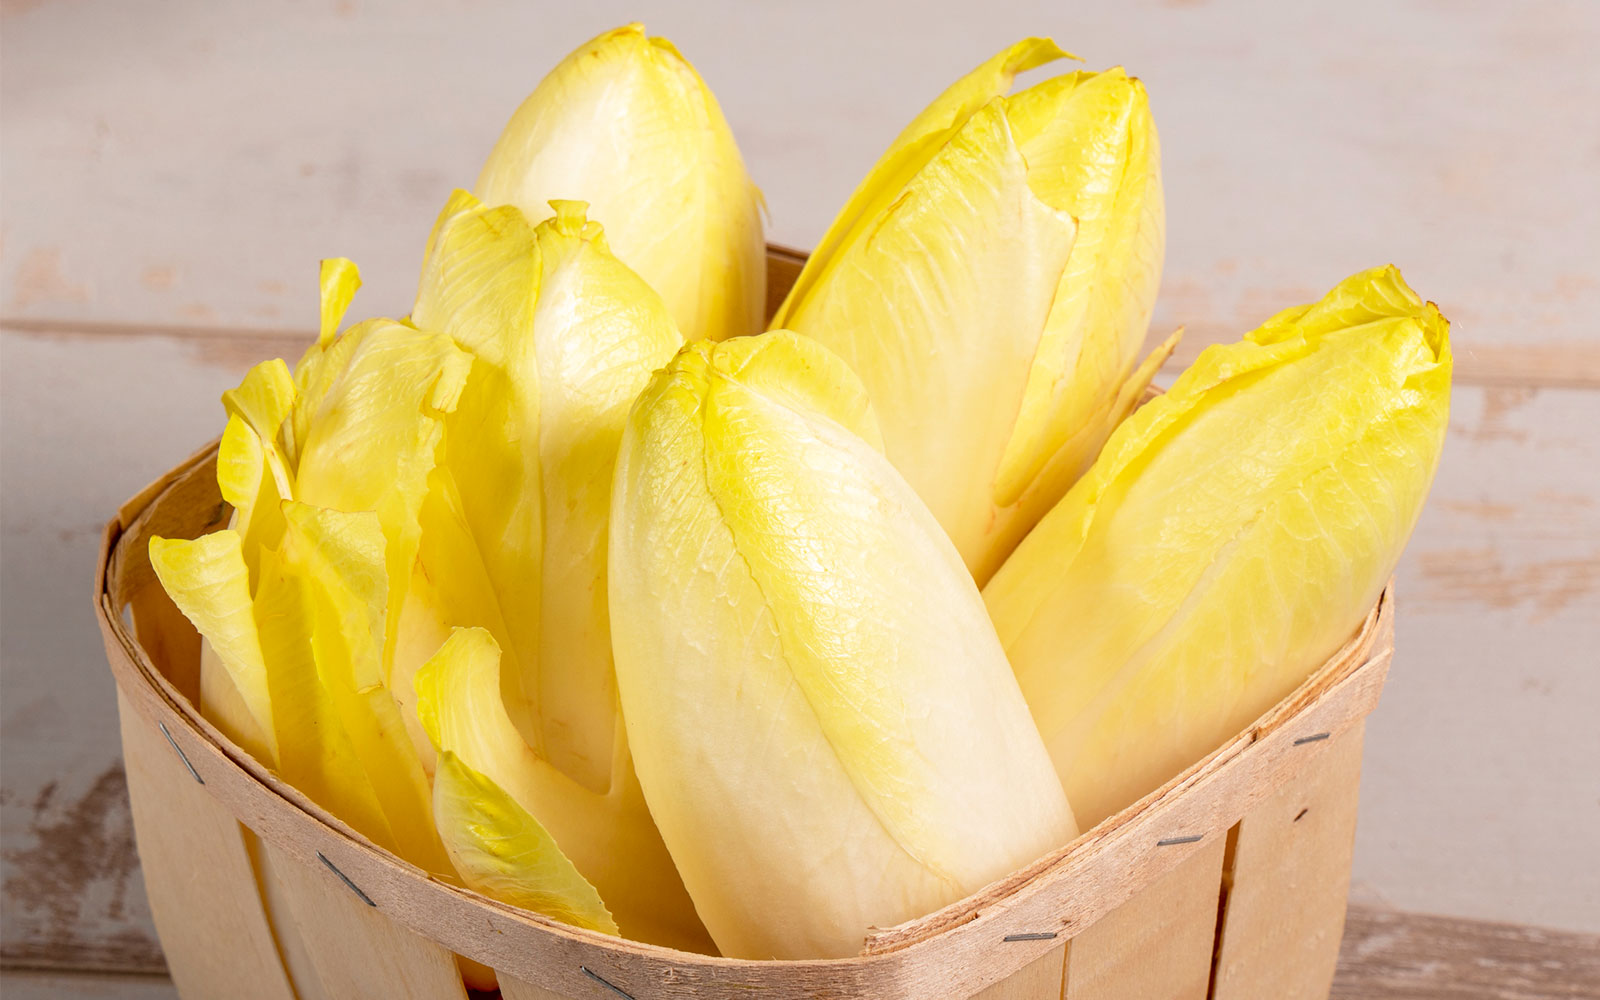 Belgian endive recipes Italian cuisine starters first and second courses side dishes